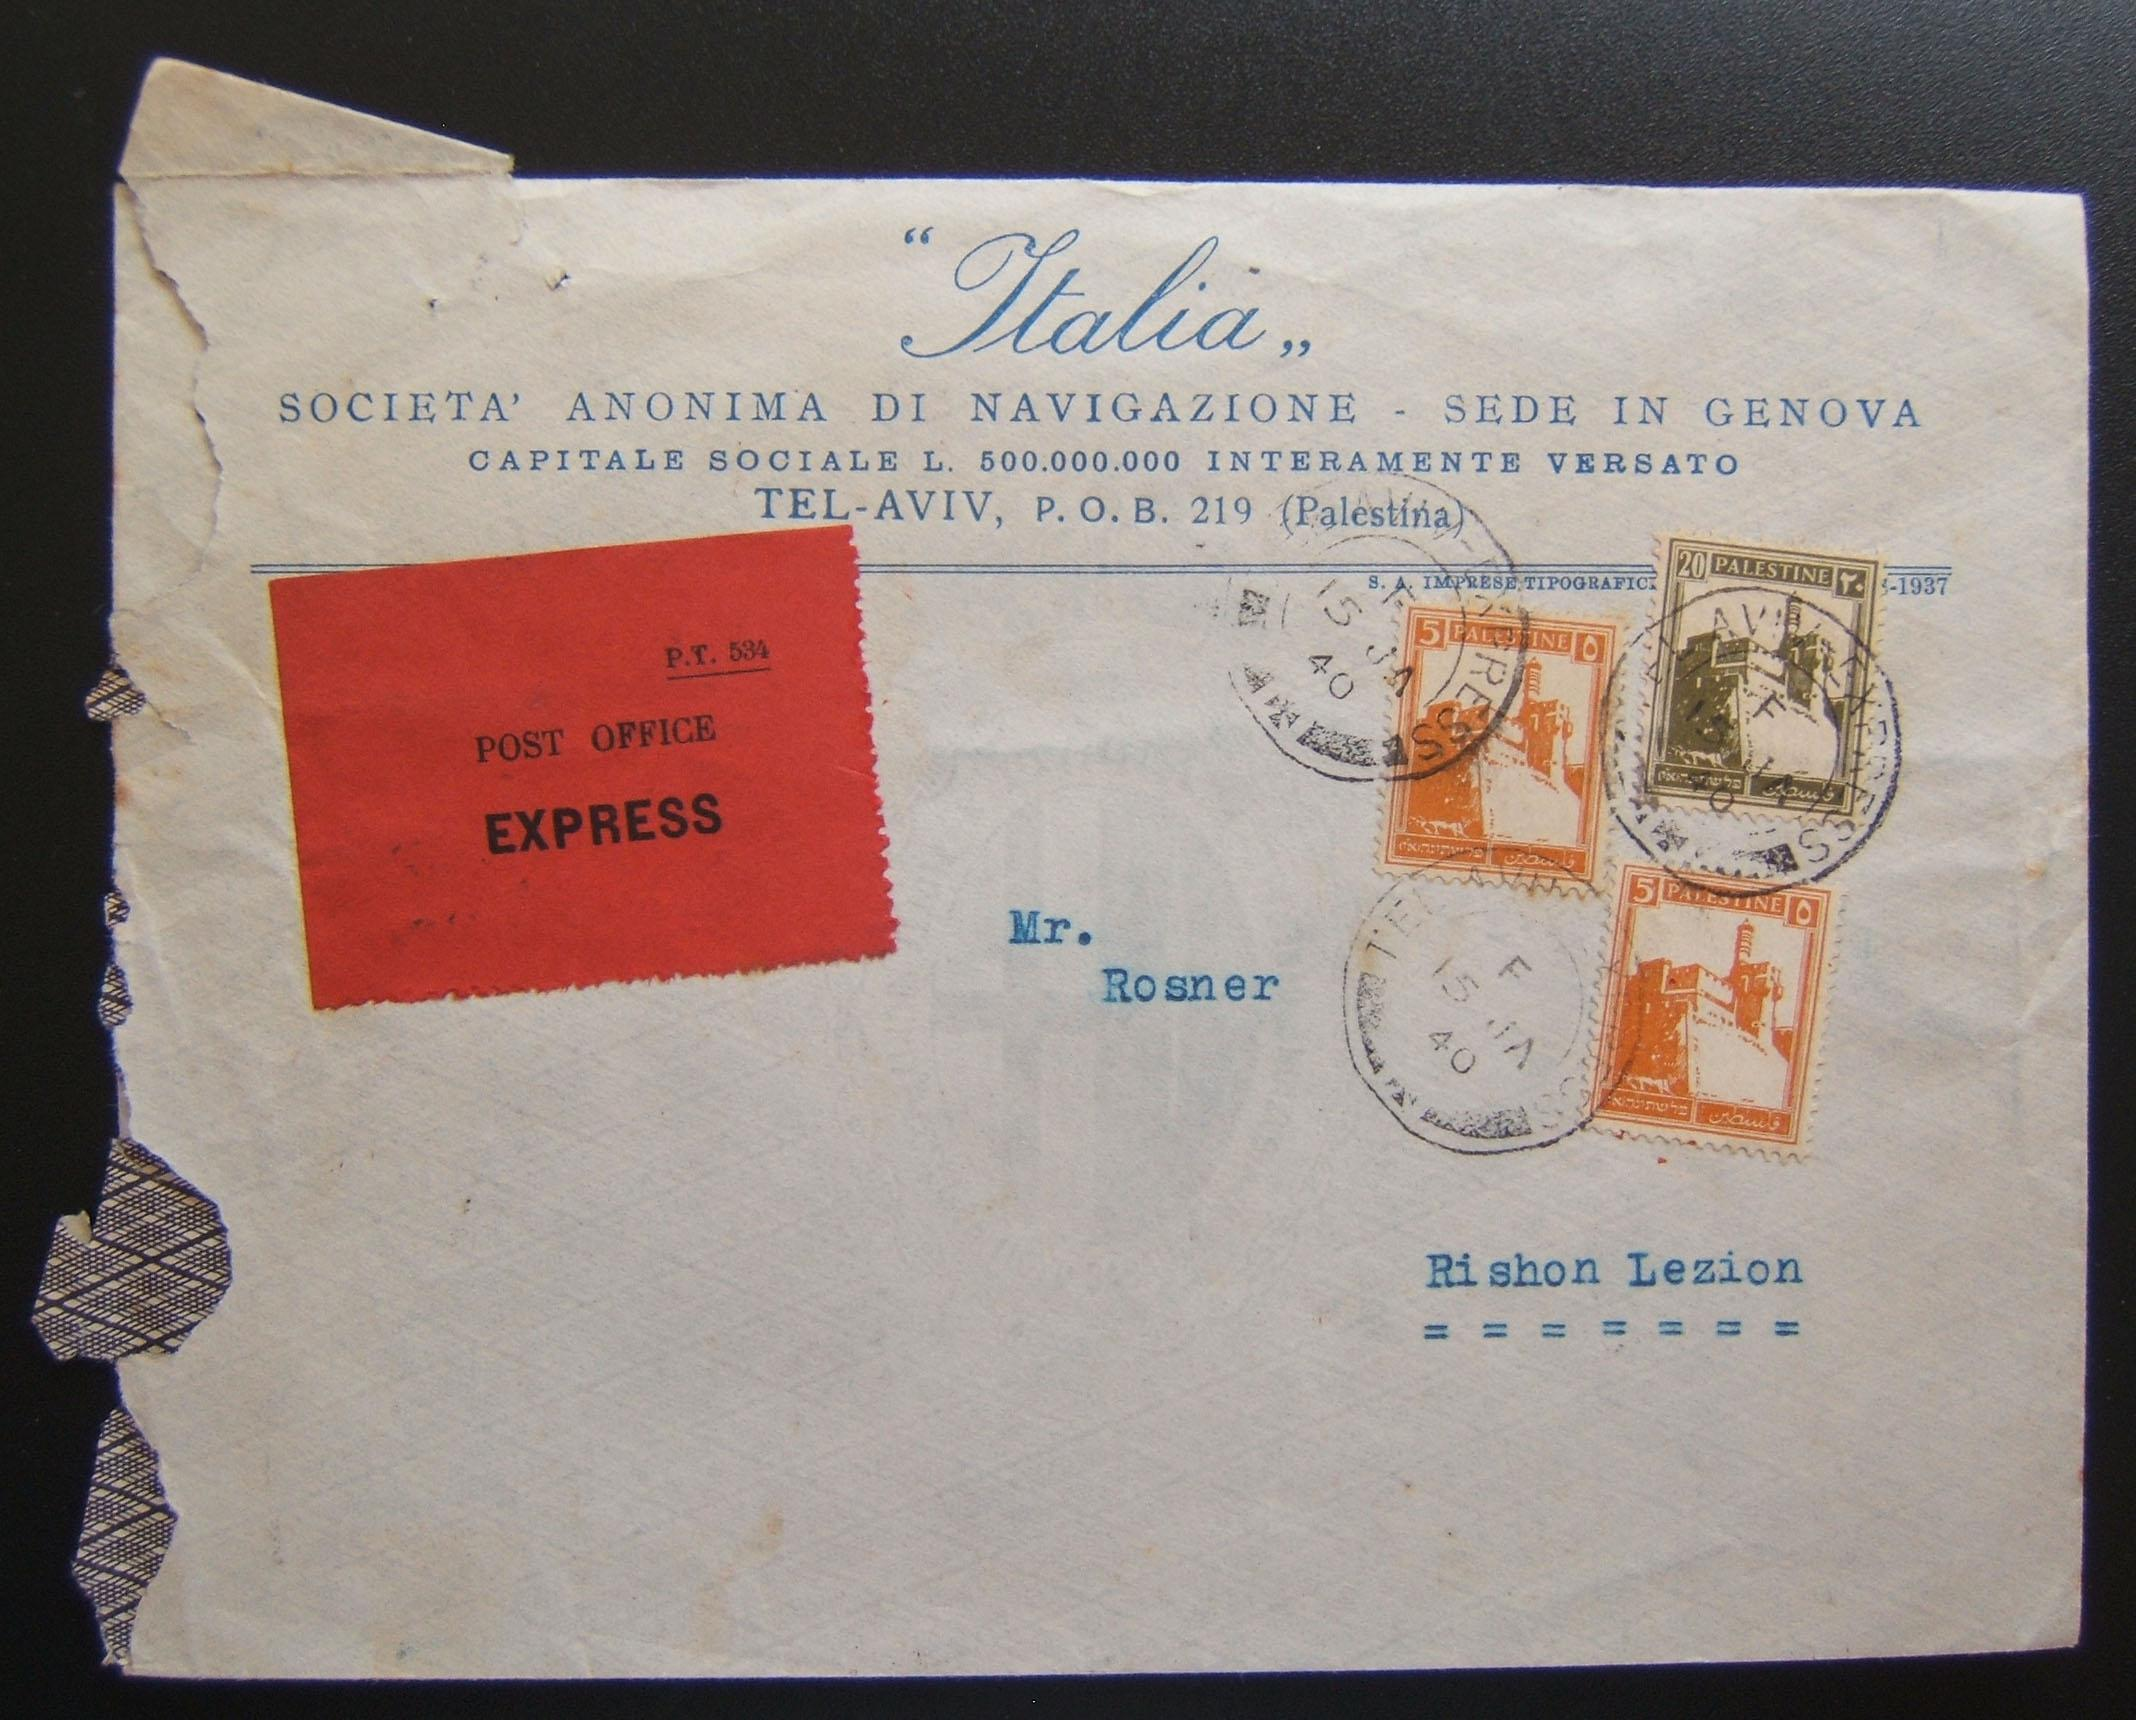 TEL AVIV to RLZ express cover on [Italian Lloyd] business statonary، franked 25m + 5m (20 + 5 + 5) at the period rate، postmarked 15 JA 40 with 3 strikes pmk H3 and marked with sca